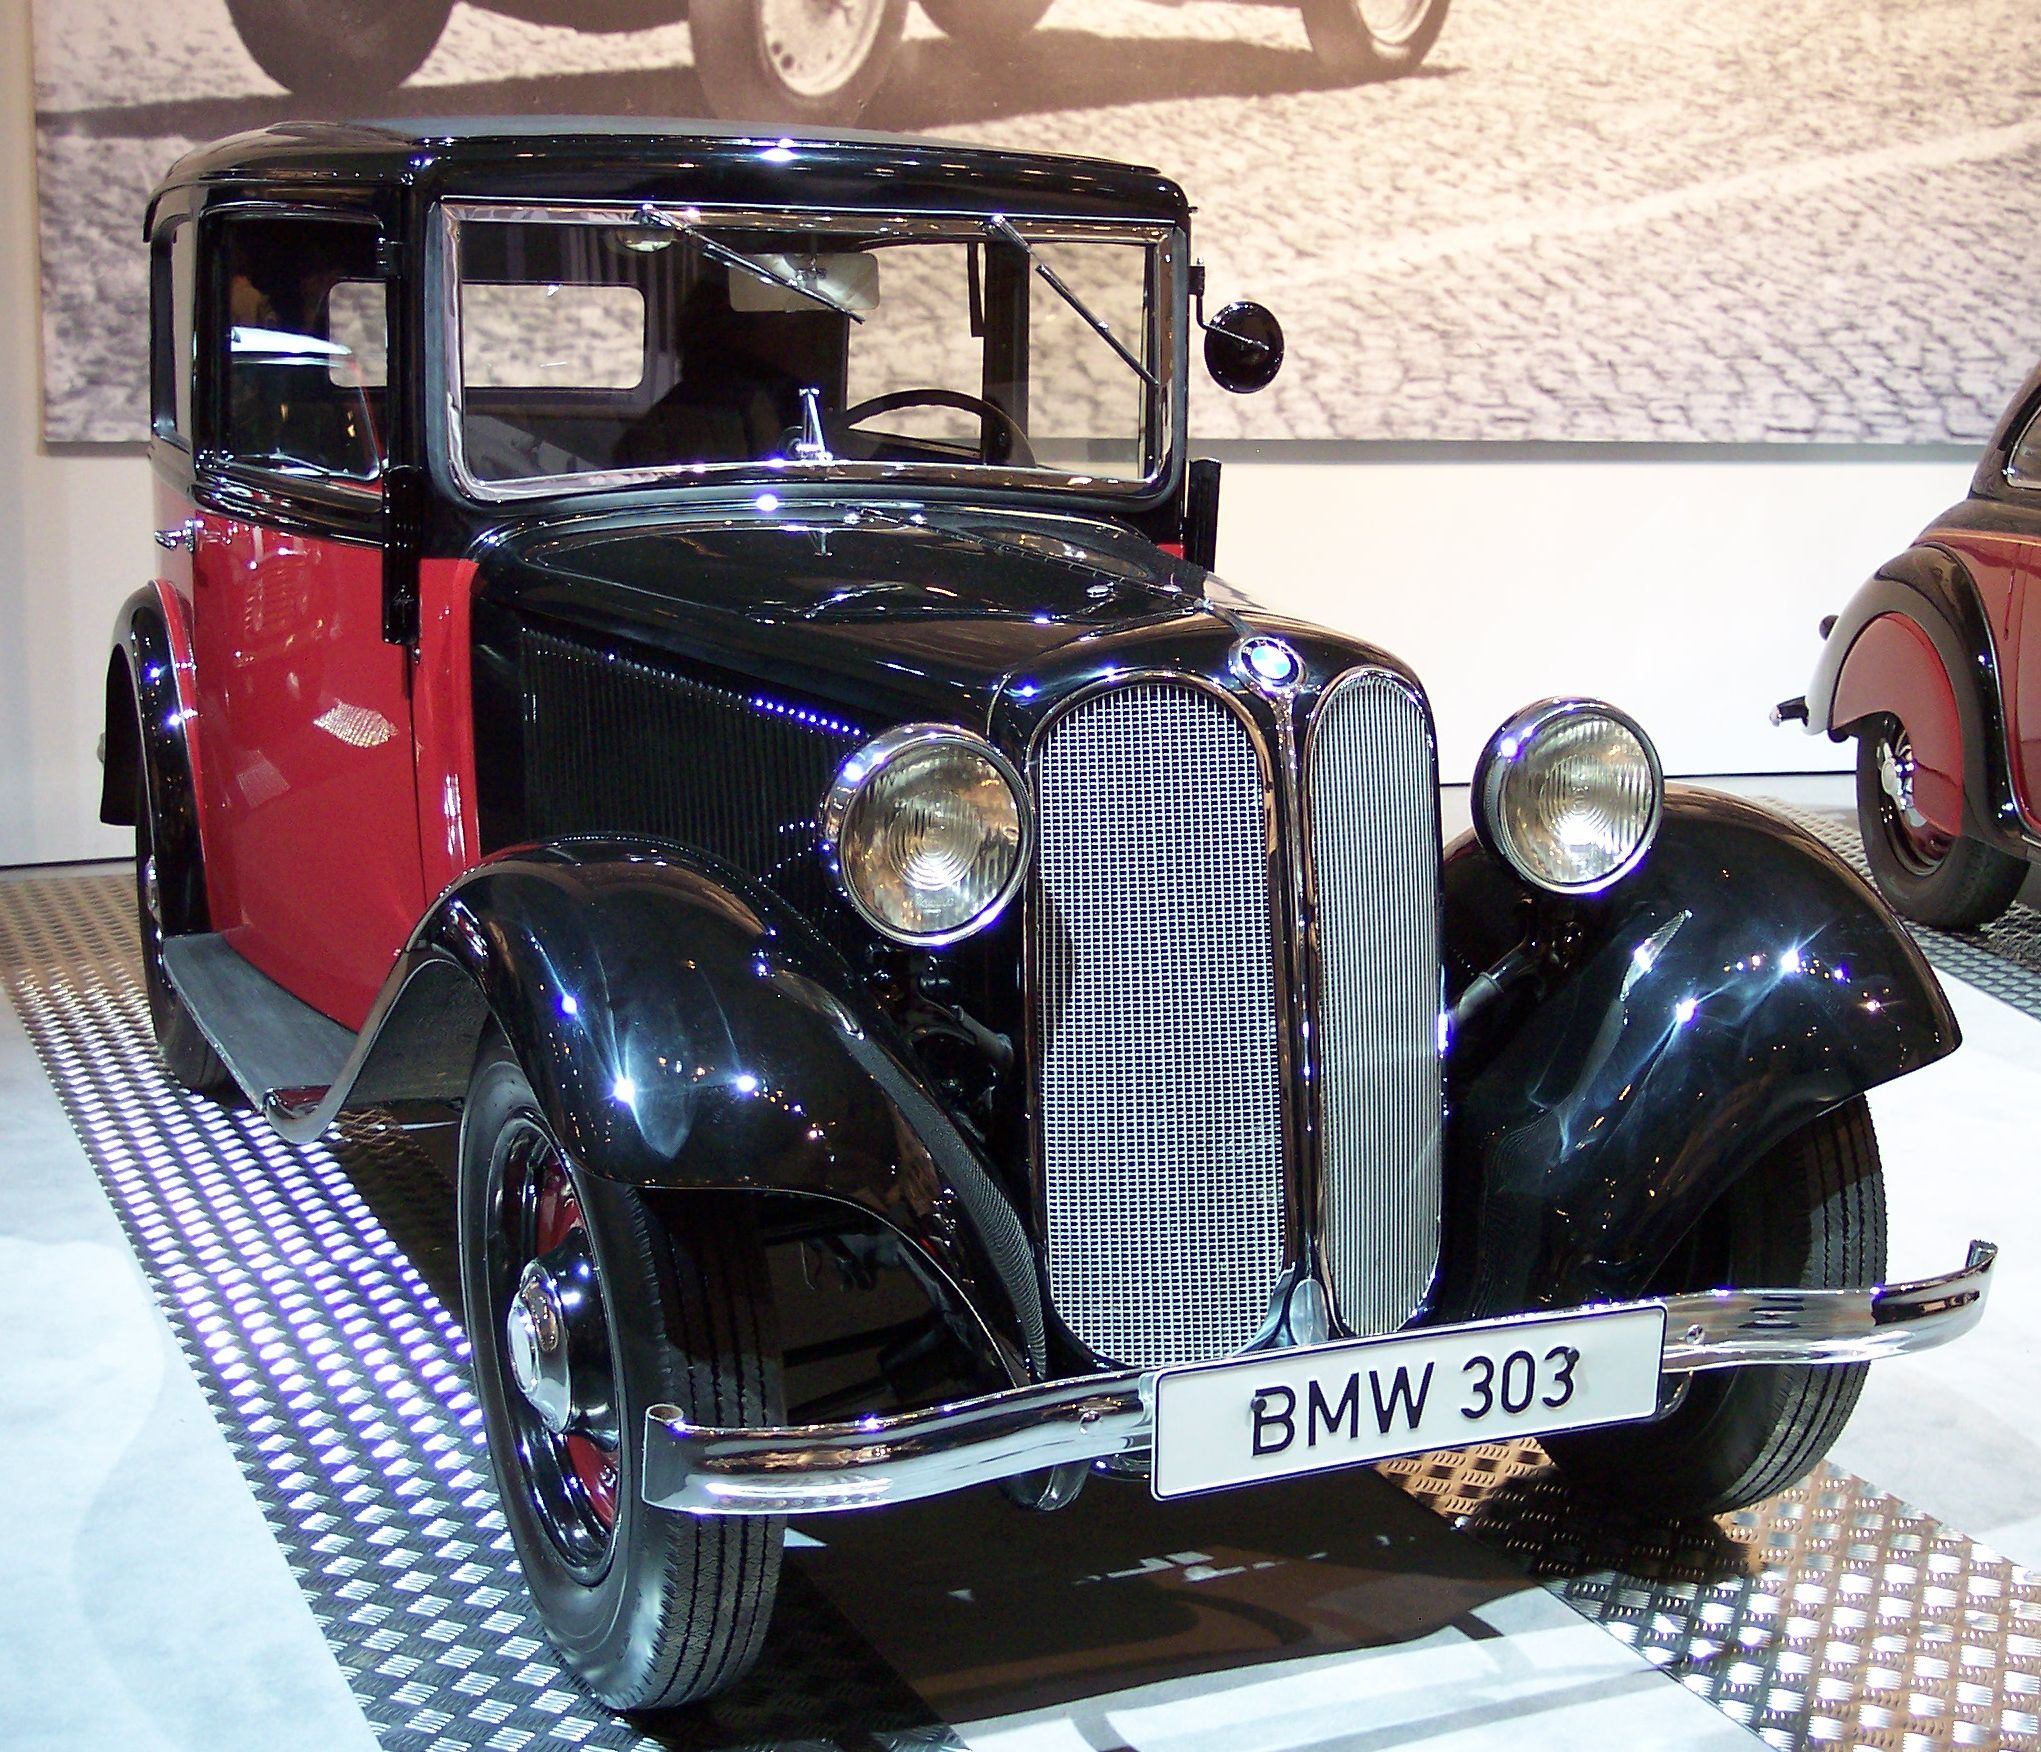 File:BMW 303 1933 bicolor vr TCE.jpg - Wikimedia Commons